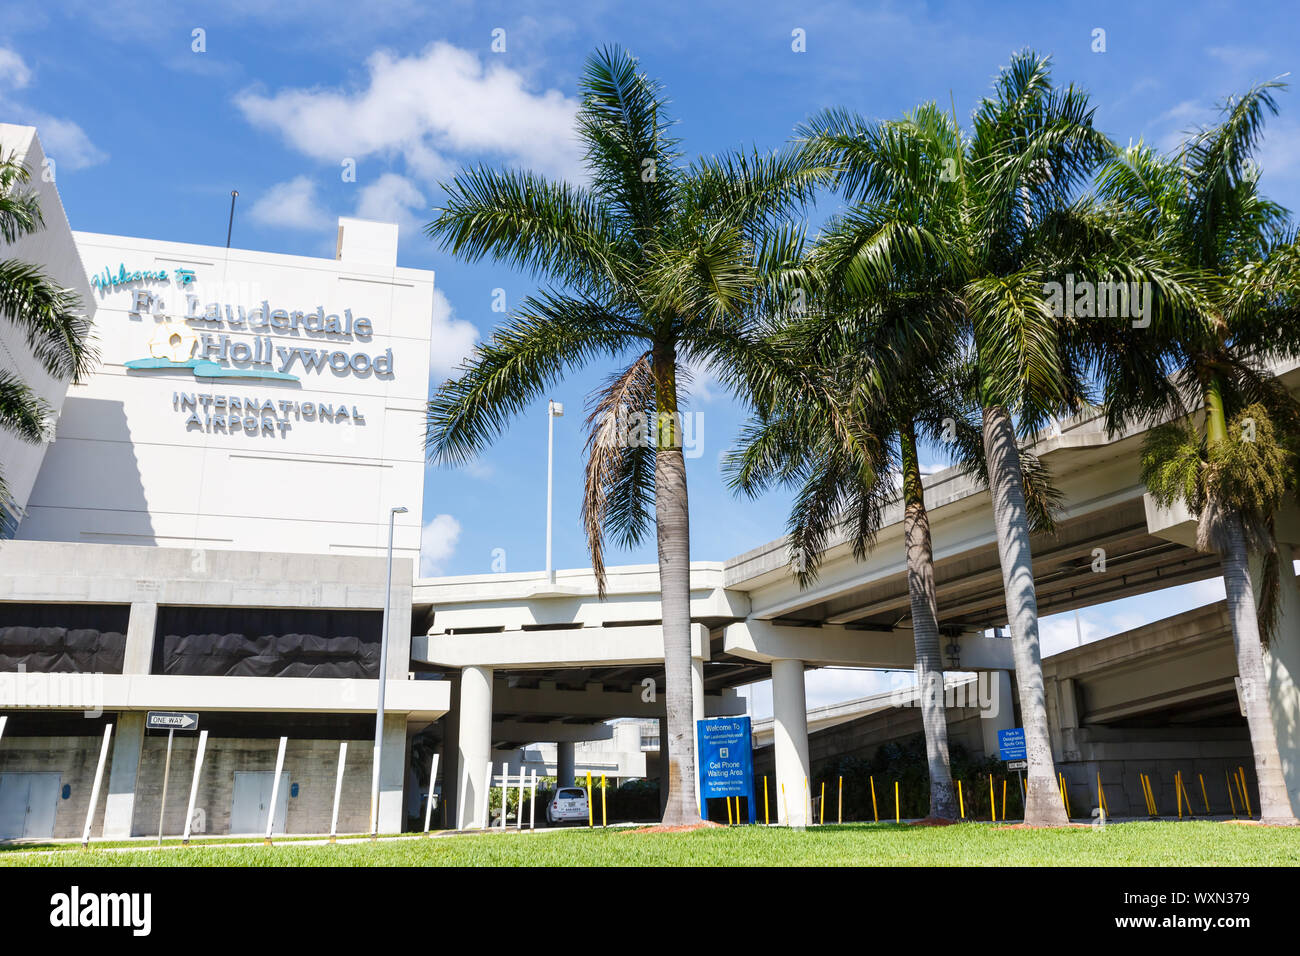 Fort Lauderdale, Florida – April 6, 2019: Logo of Fort Lauderdale airport (FLL) in Florida. Stock Photo